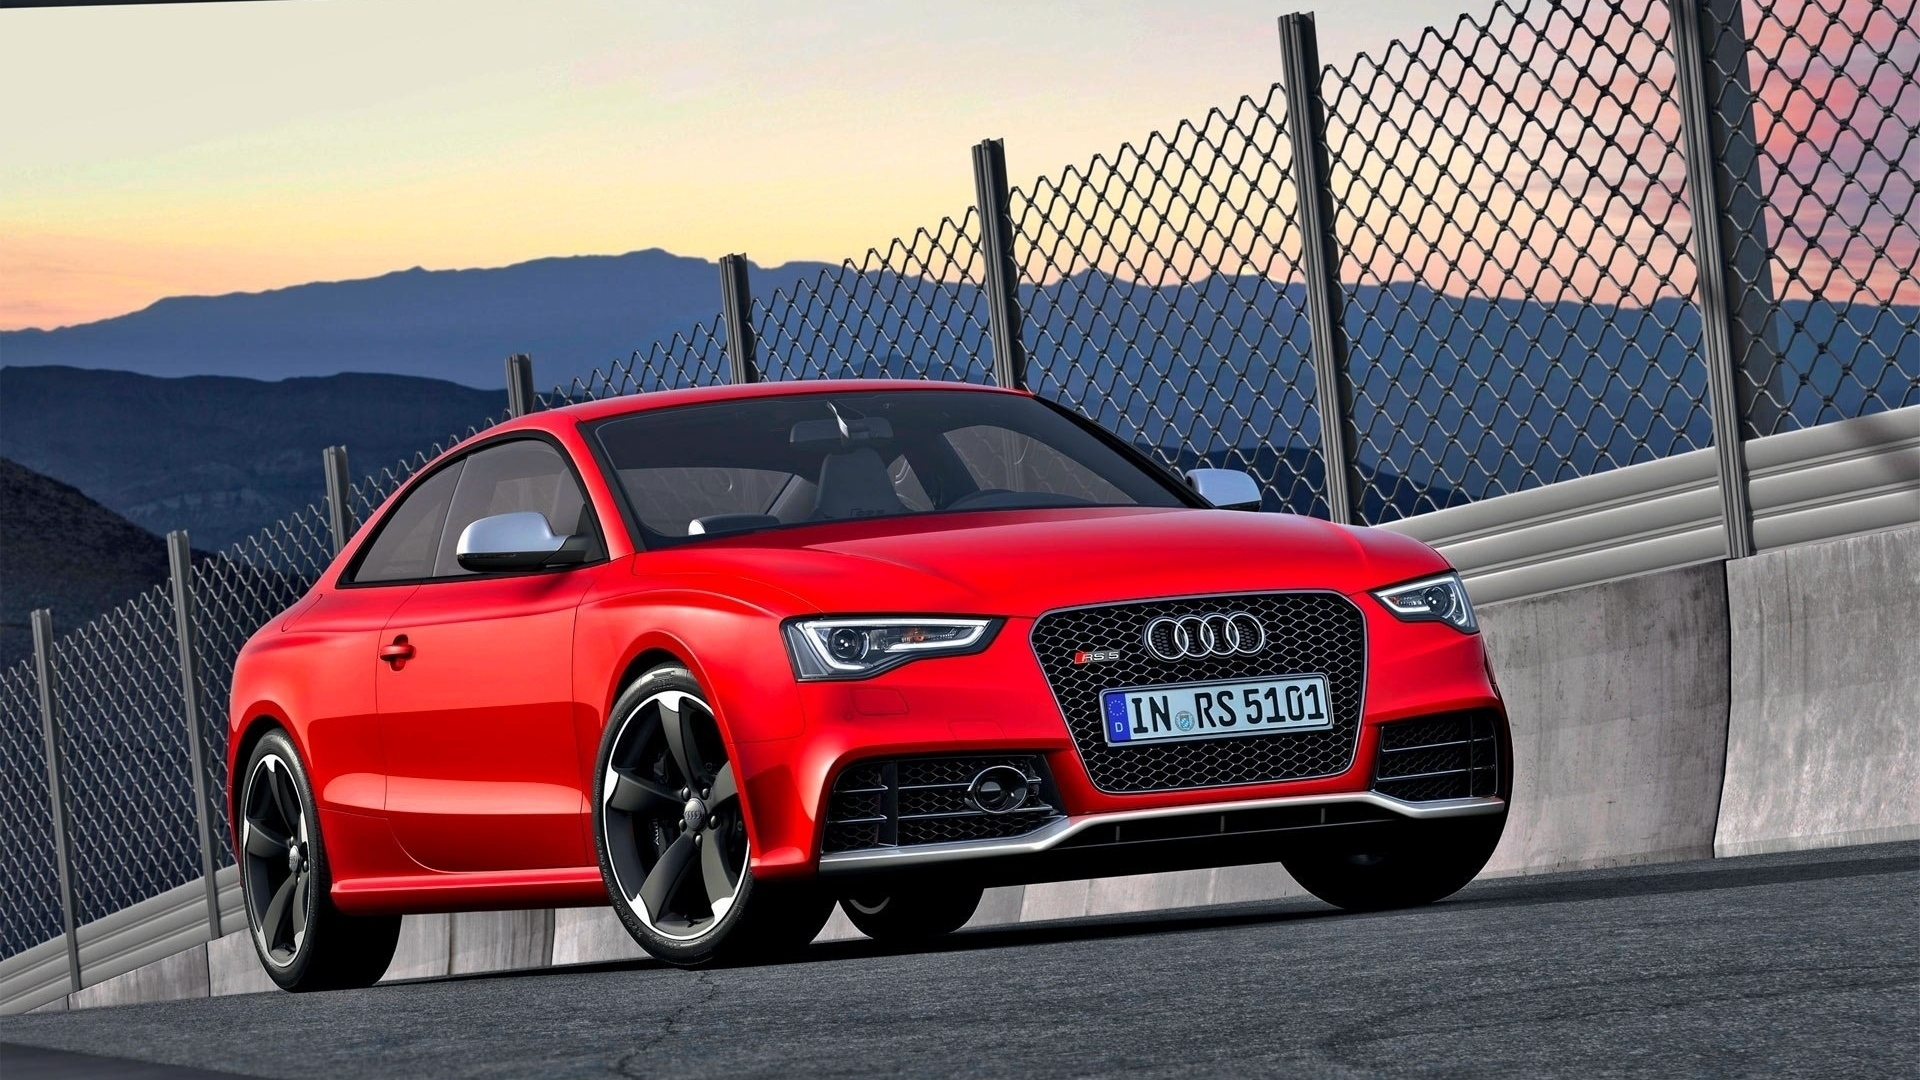 1920x1080-audi-auto-car-cars-grid-wallpaper-wp380900